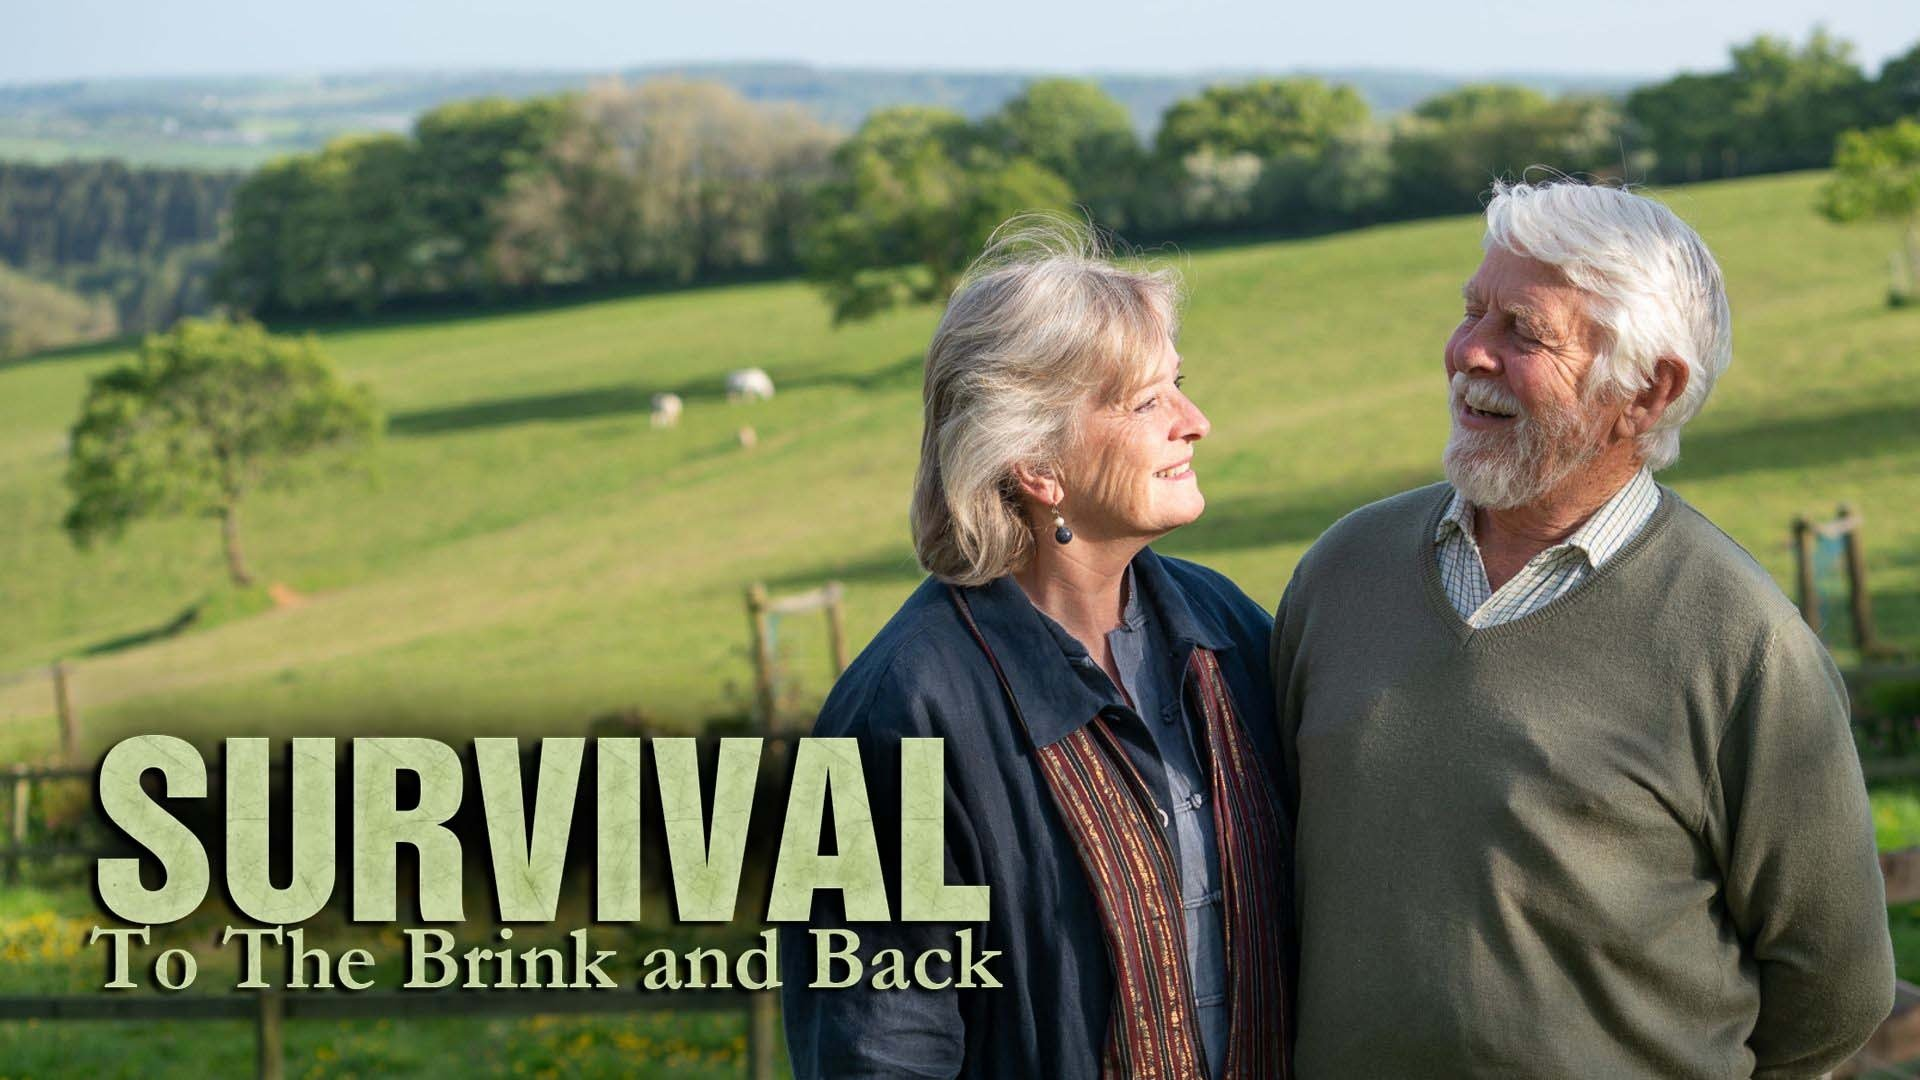 Survival - To The Brink and Back